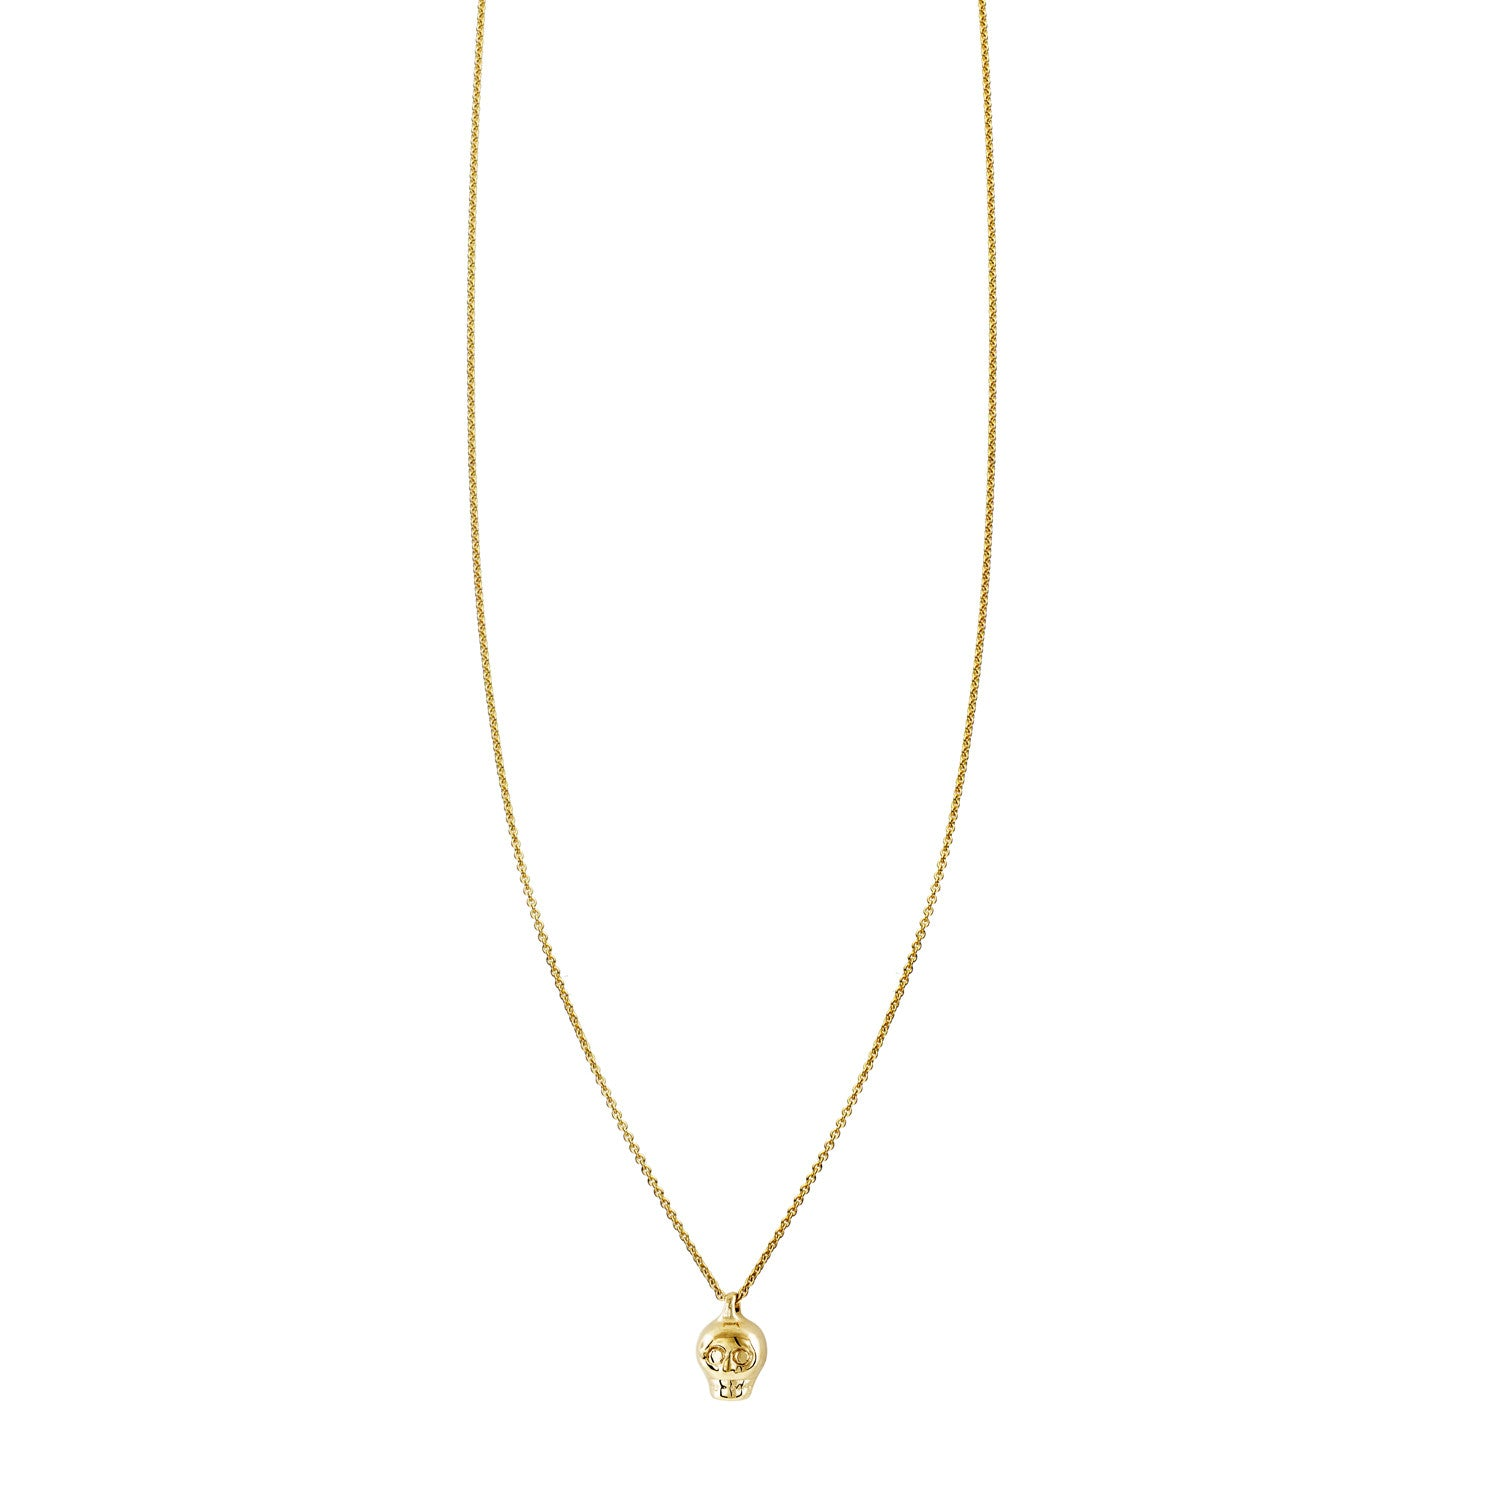 Tiny Skull Charm On A Gold Necklace